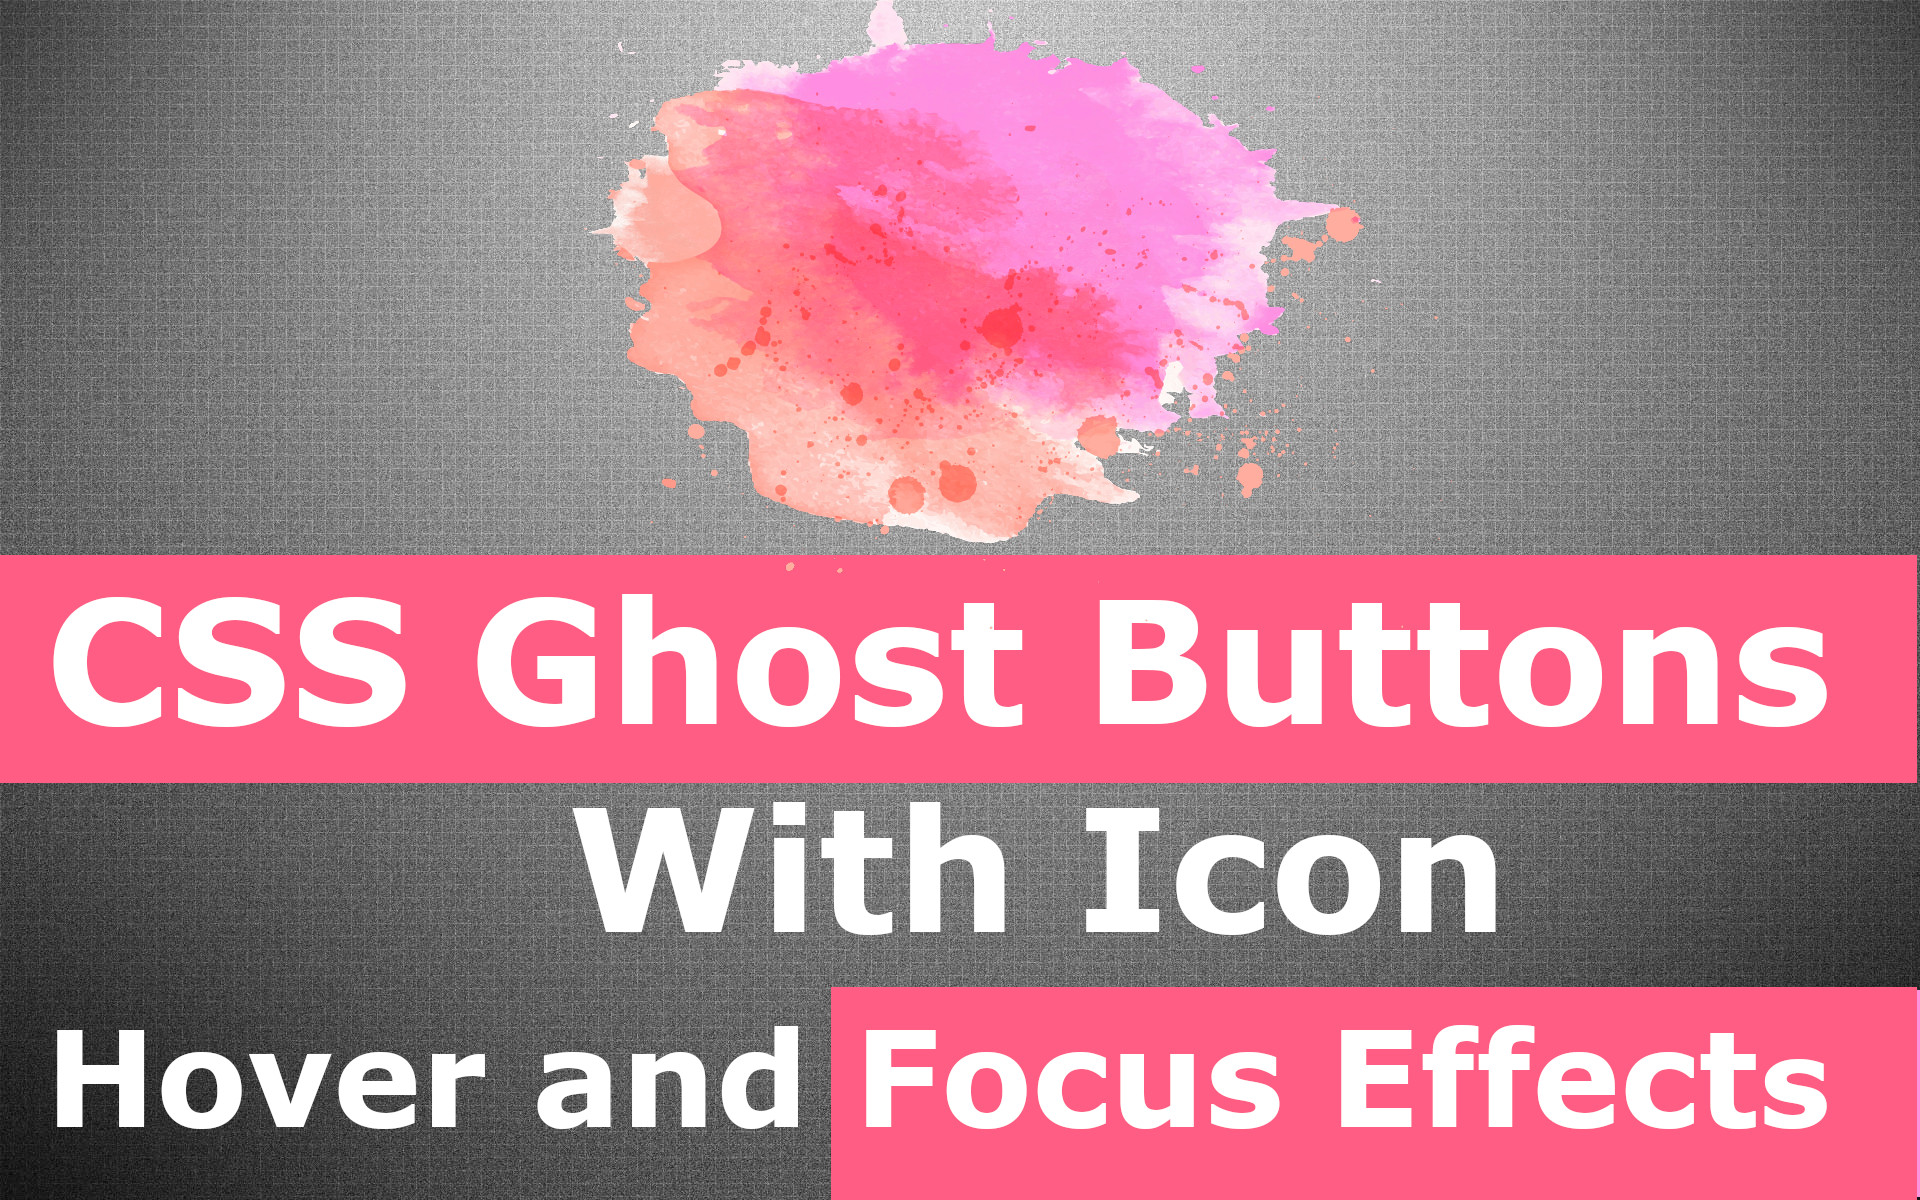 Ghost Buttons With Icon Using Css